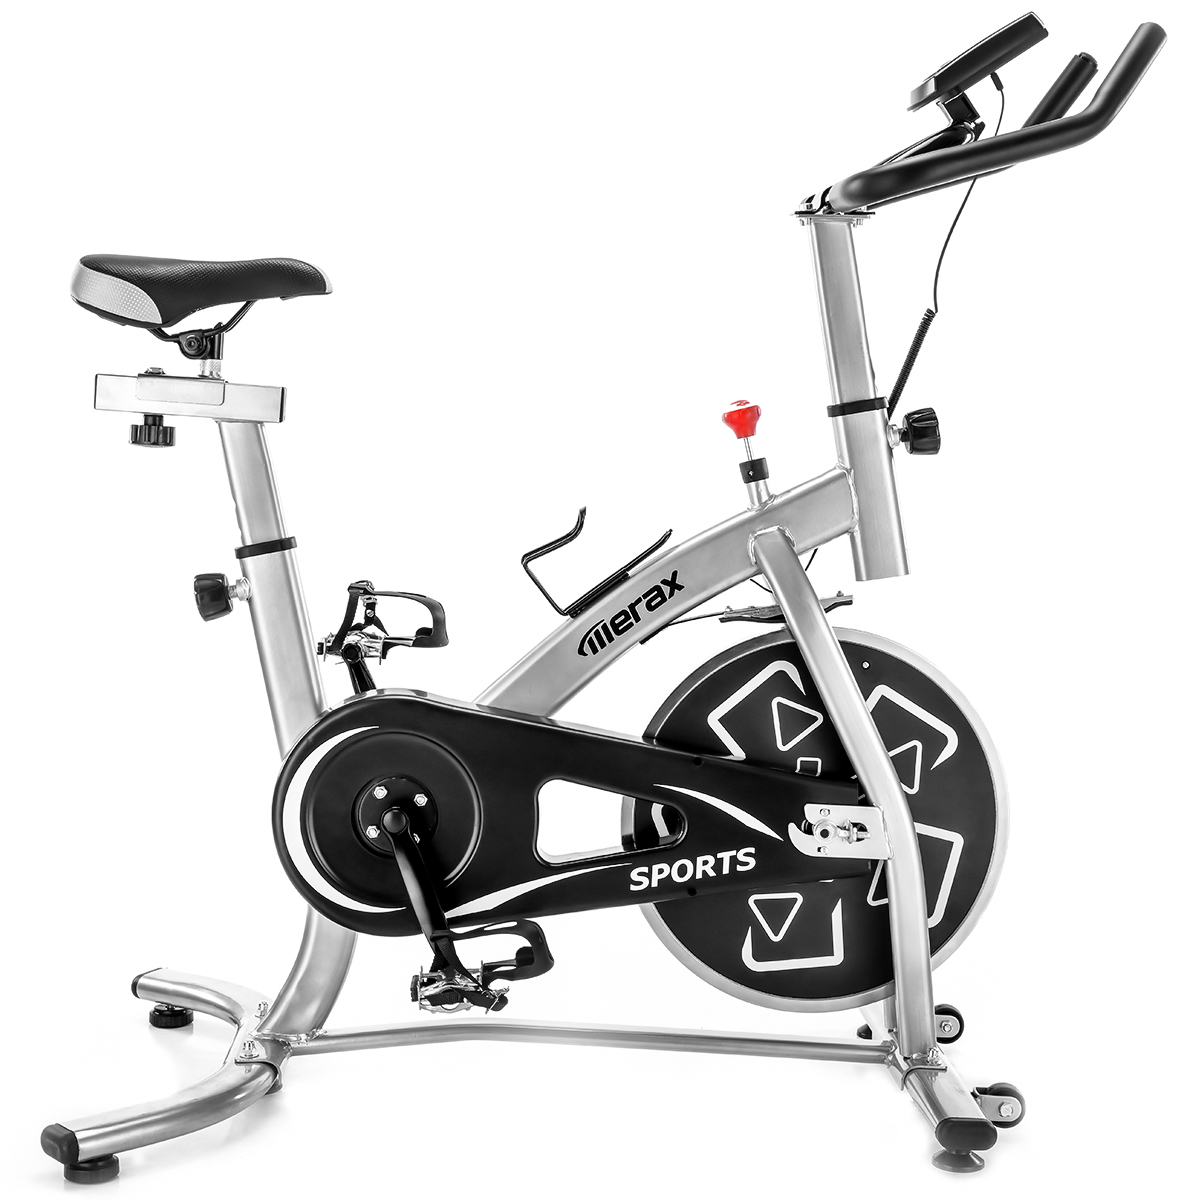 [US DIRECT] Merax S280 Indoor Cycling Bike Belt Drive Outdoor Exercise Bike with 22lbs Flywheel-Sliver Led Light